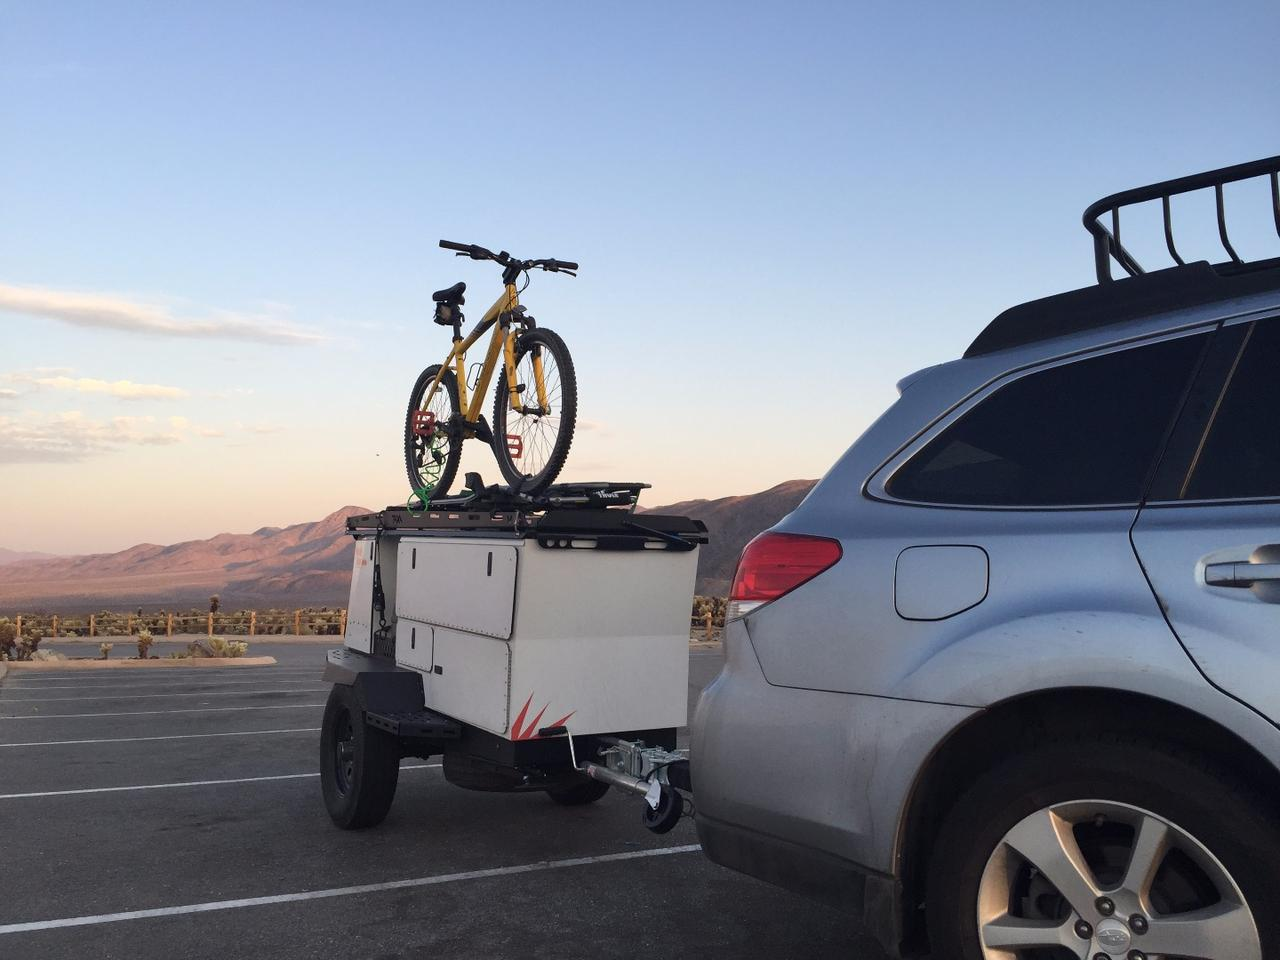 The WoollyBear is designed to be a light, slim cargo/campingtrailer for outdoor adventure